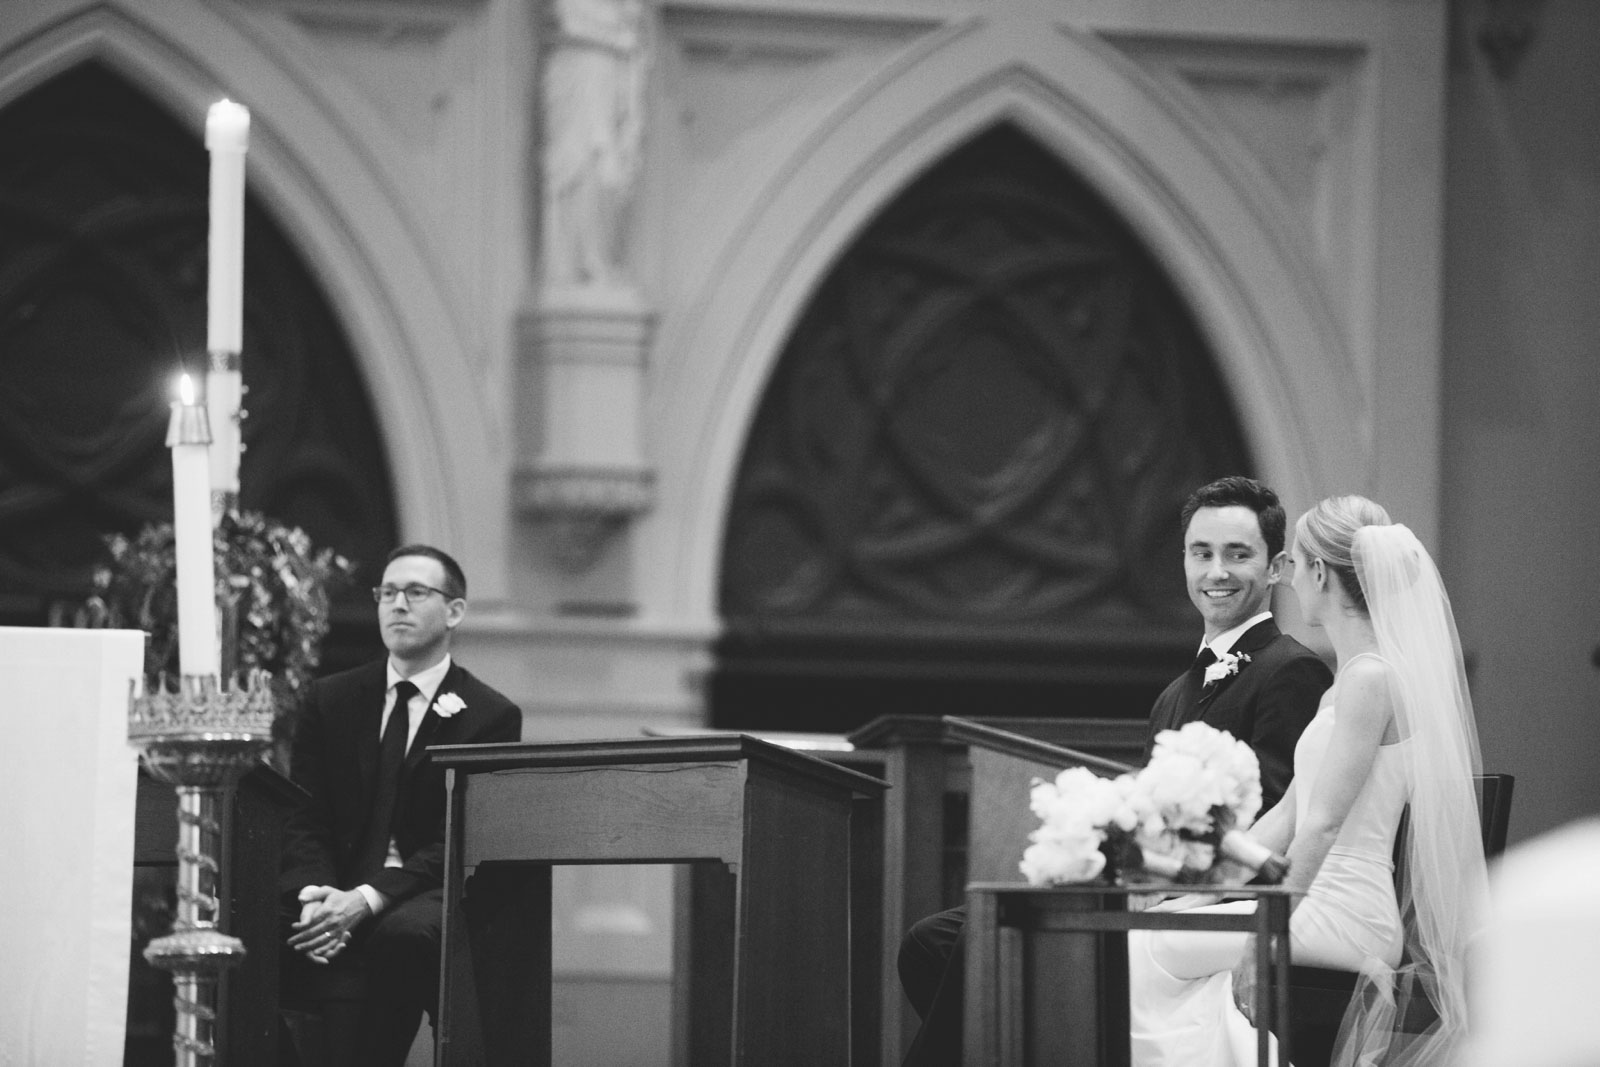 black and white shot of groom smiling at bride while they sit at altar during Roman Catholic wedding